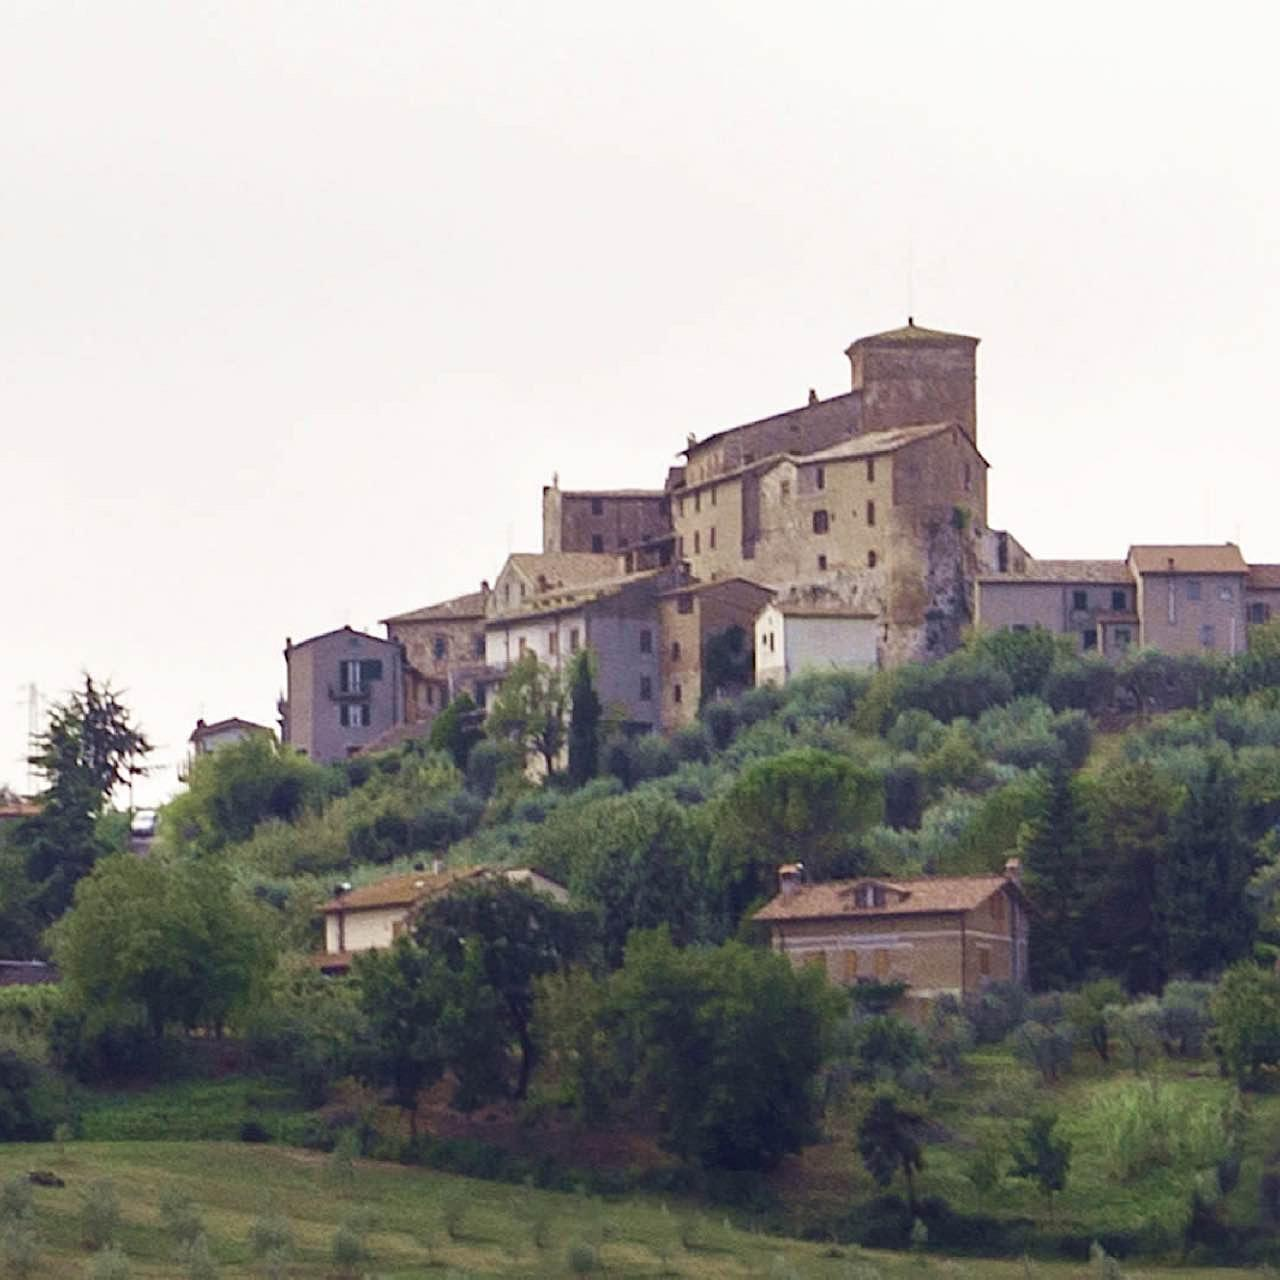 Fabro and Orvieto area